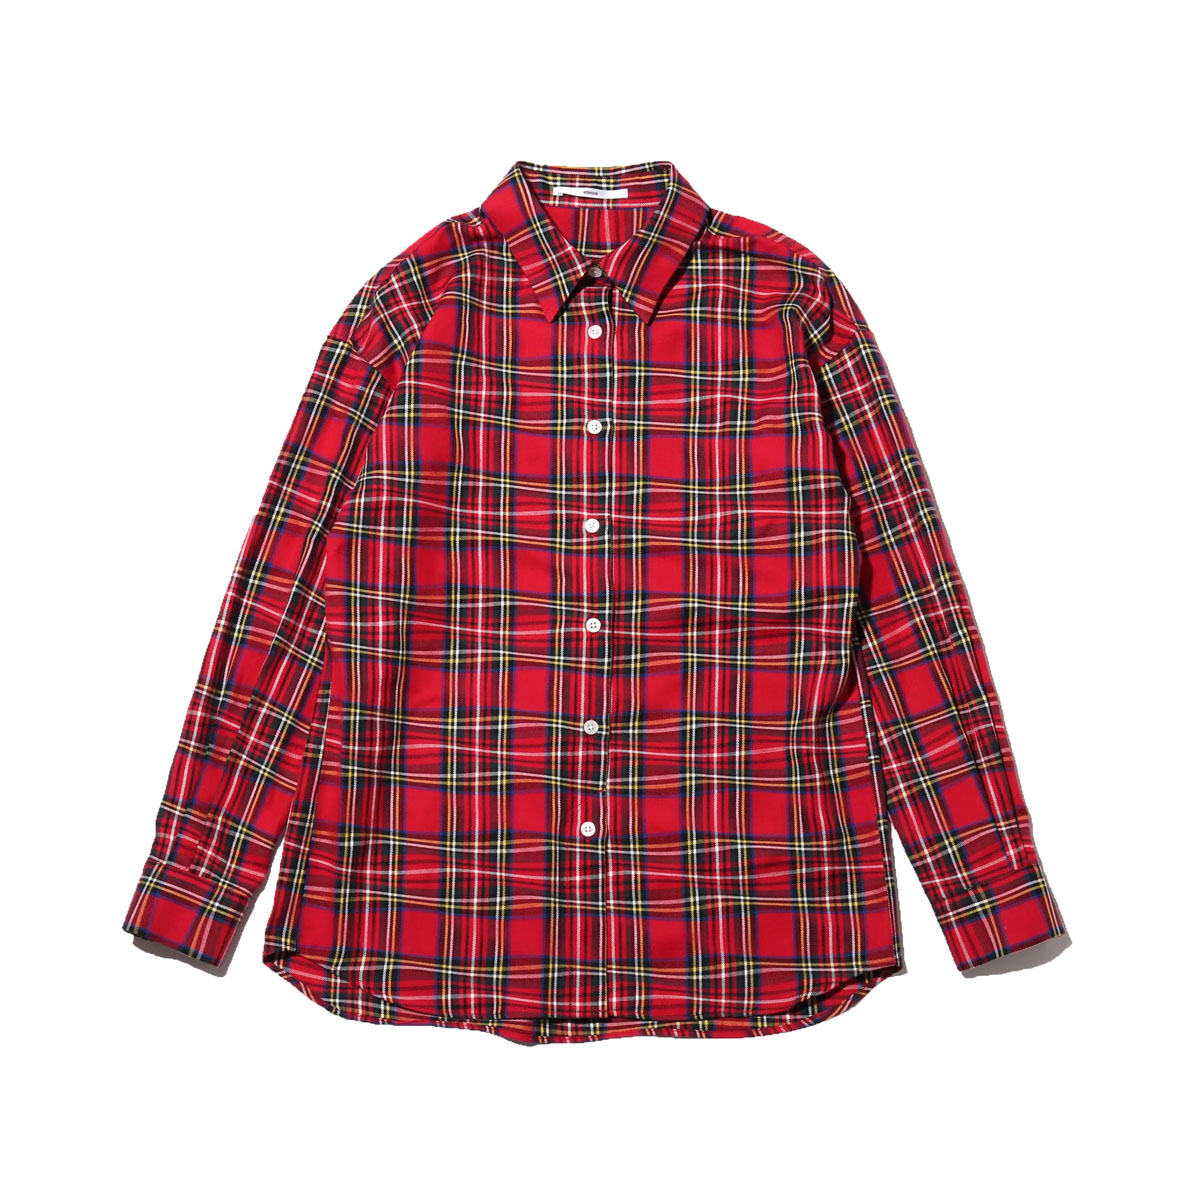 atmos pink プリント セットアップ シャツ(アトモスピンク プリント セットアップ シャツ)RED【レディース シャツ】18FW-I